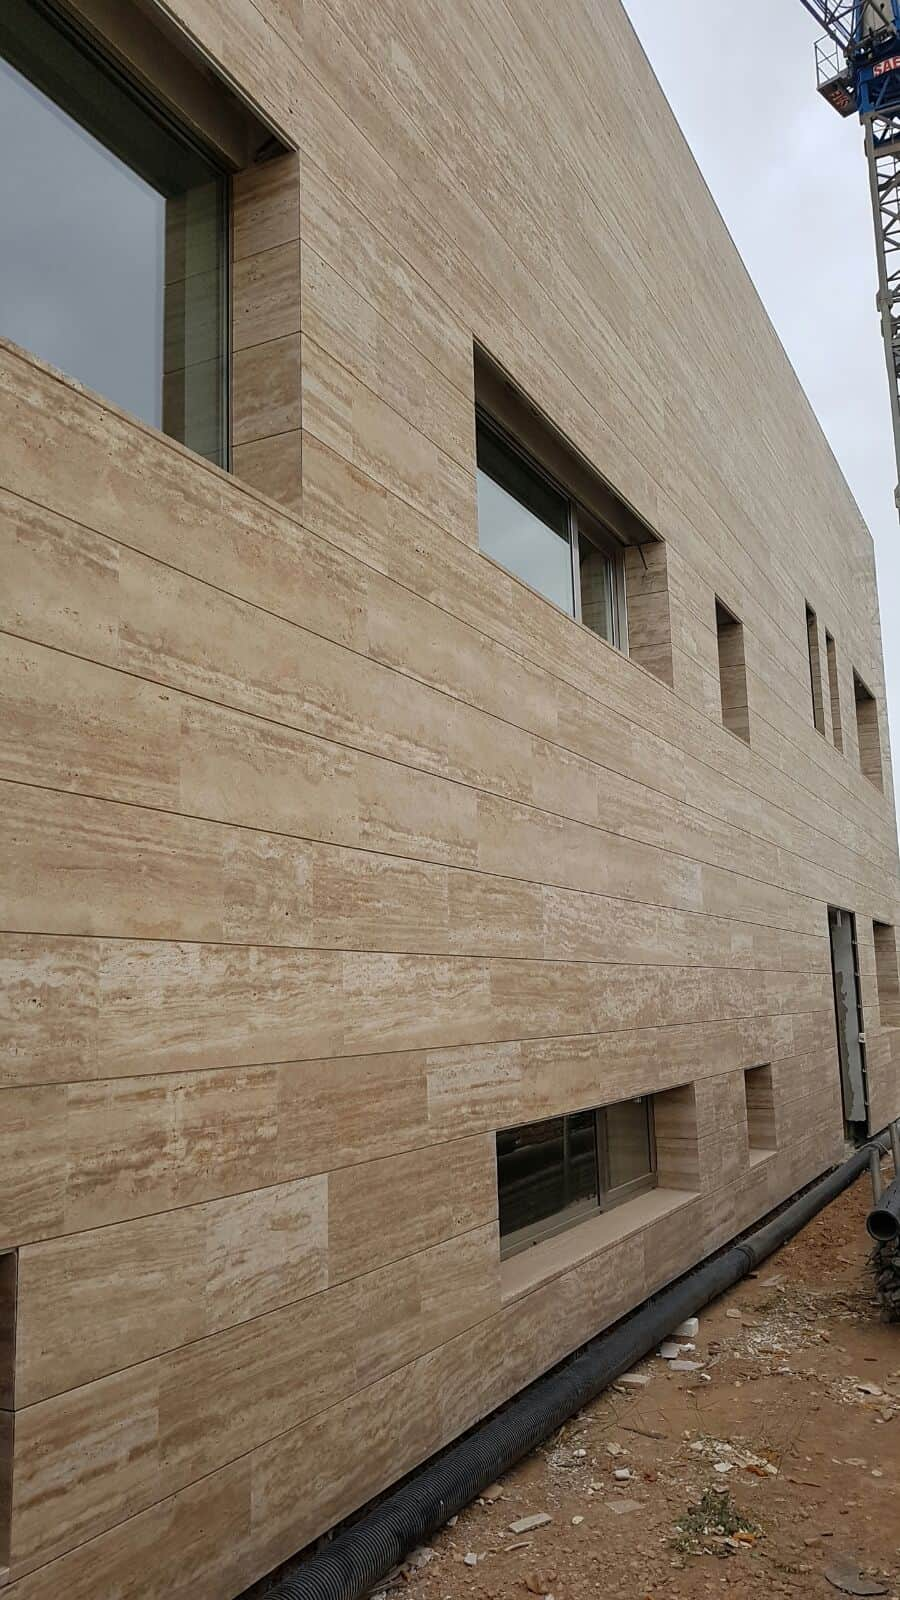 marmol_travertino_turco_con_veta_fachada